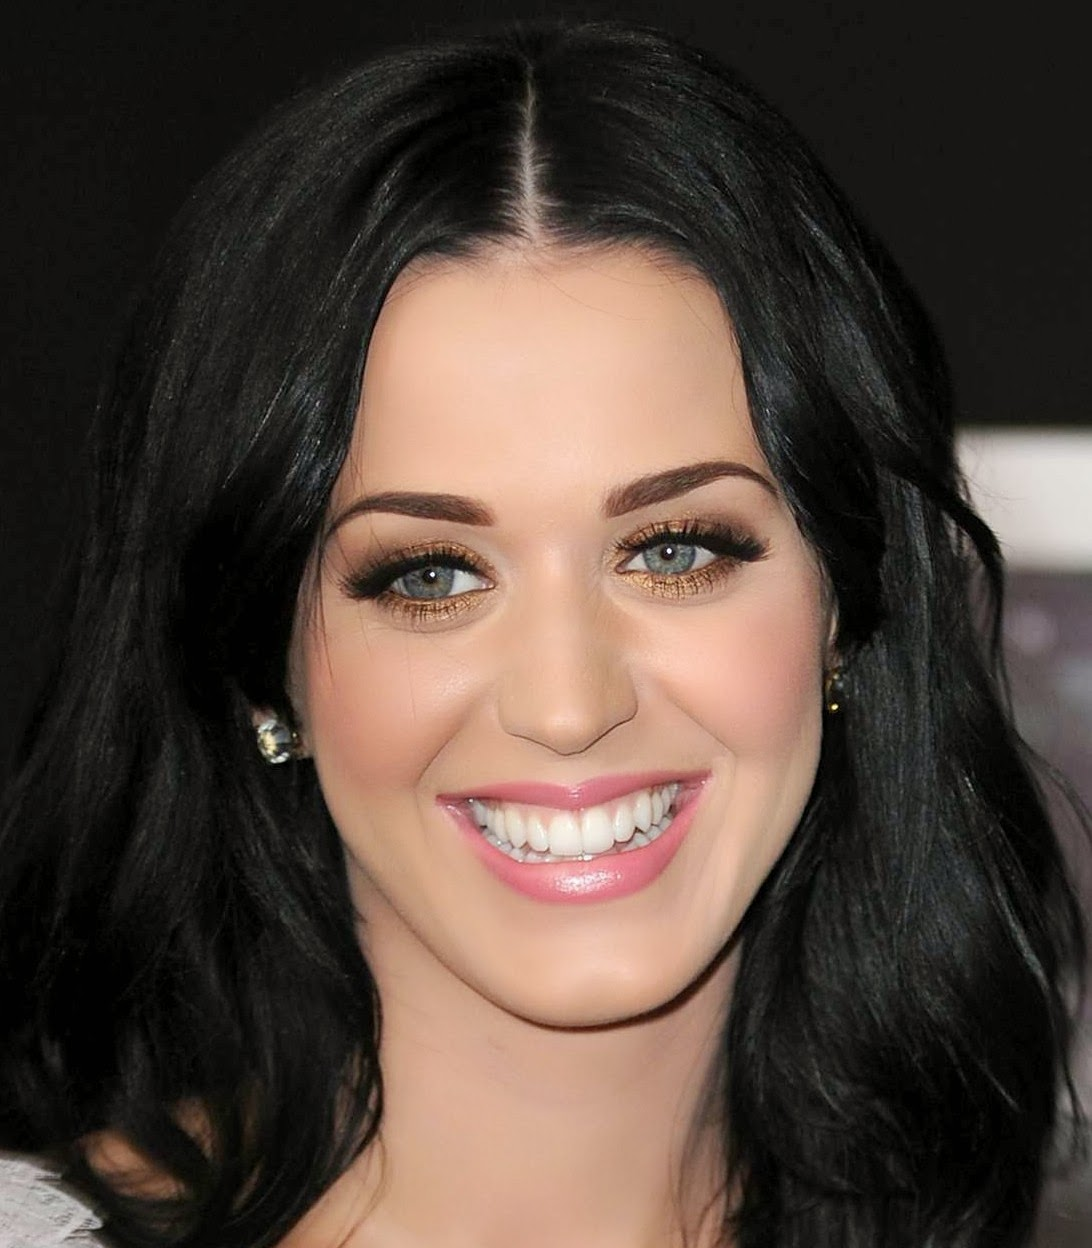 Katy Perry: Everthing: Katy Perry Makeup Looks For Valentines Day 2014